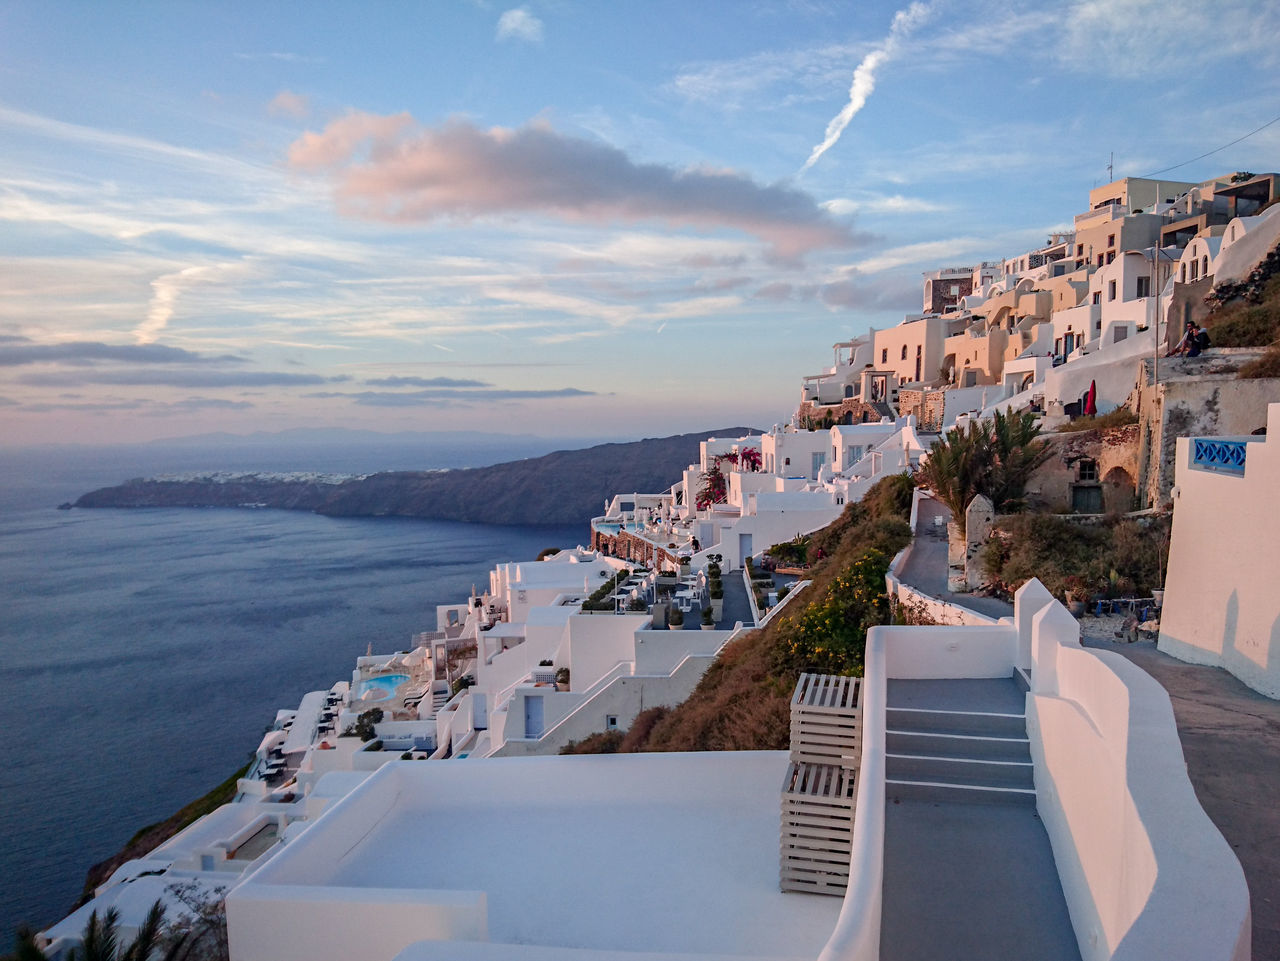 Santorini, Greece Sea Architecture High Angle View Roof Scenics Outdoors Cloud - Sky Building Exterior Cityscape Water Greek Islands Greekarchitecture Greece White Houses In Landscape Sunset Day Travel Destinations Ocean Tourism Beauty In Nature Famous Tourist Attractions